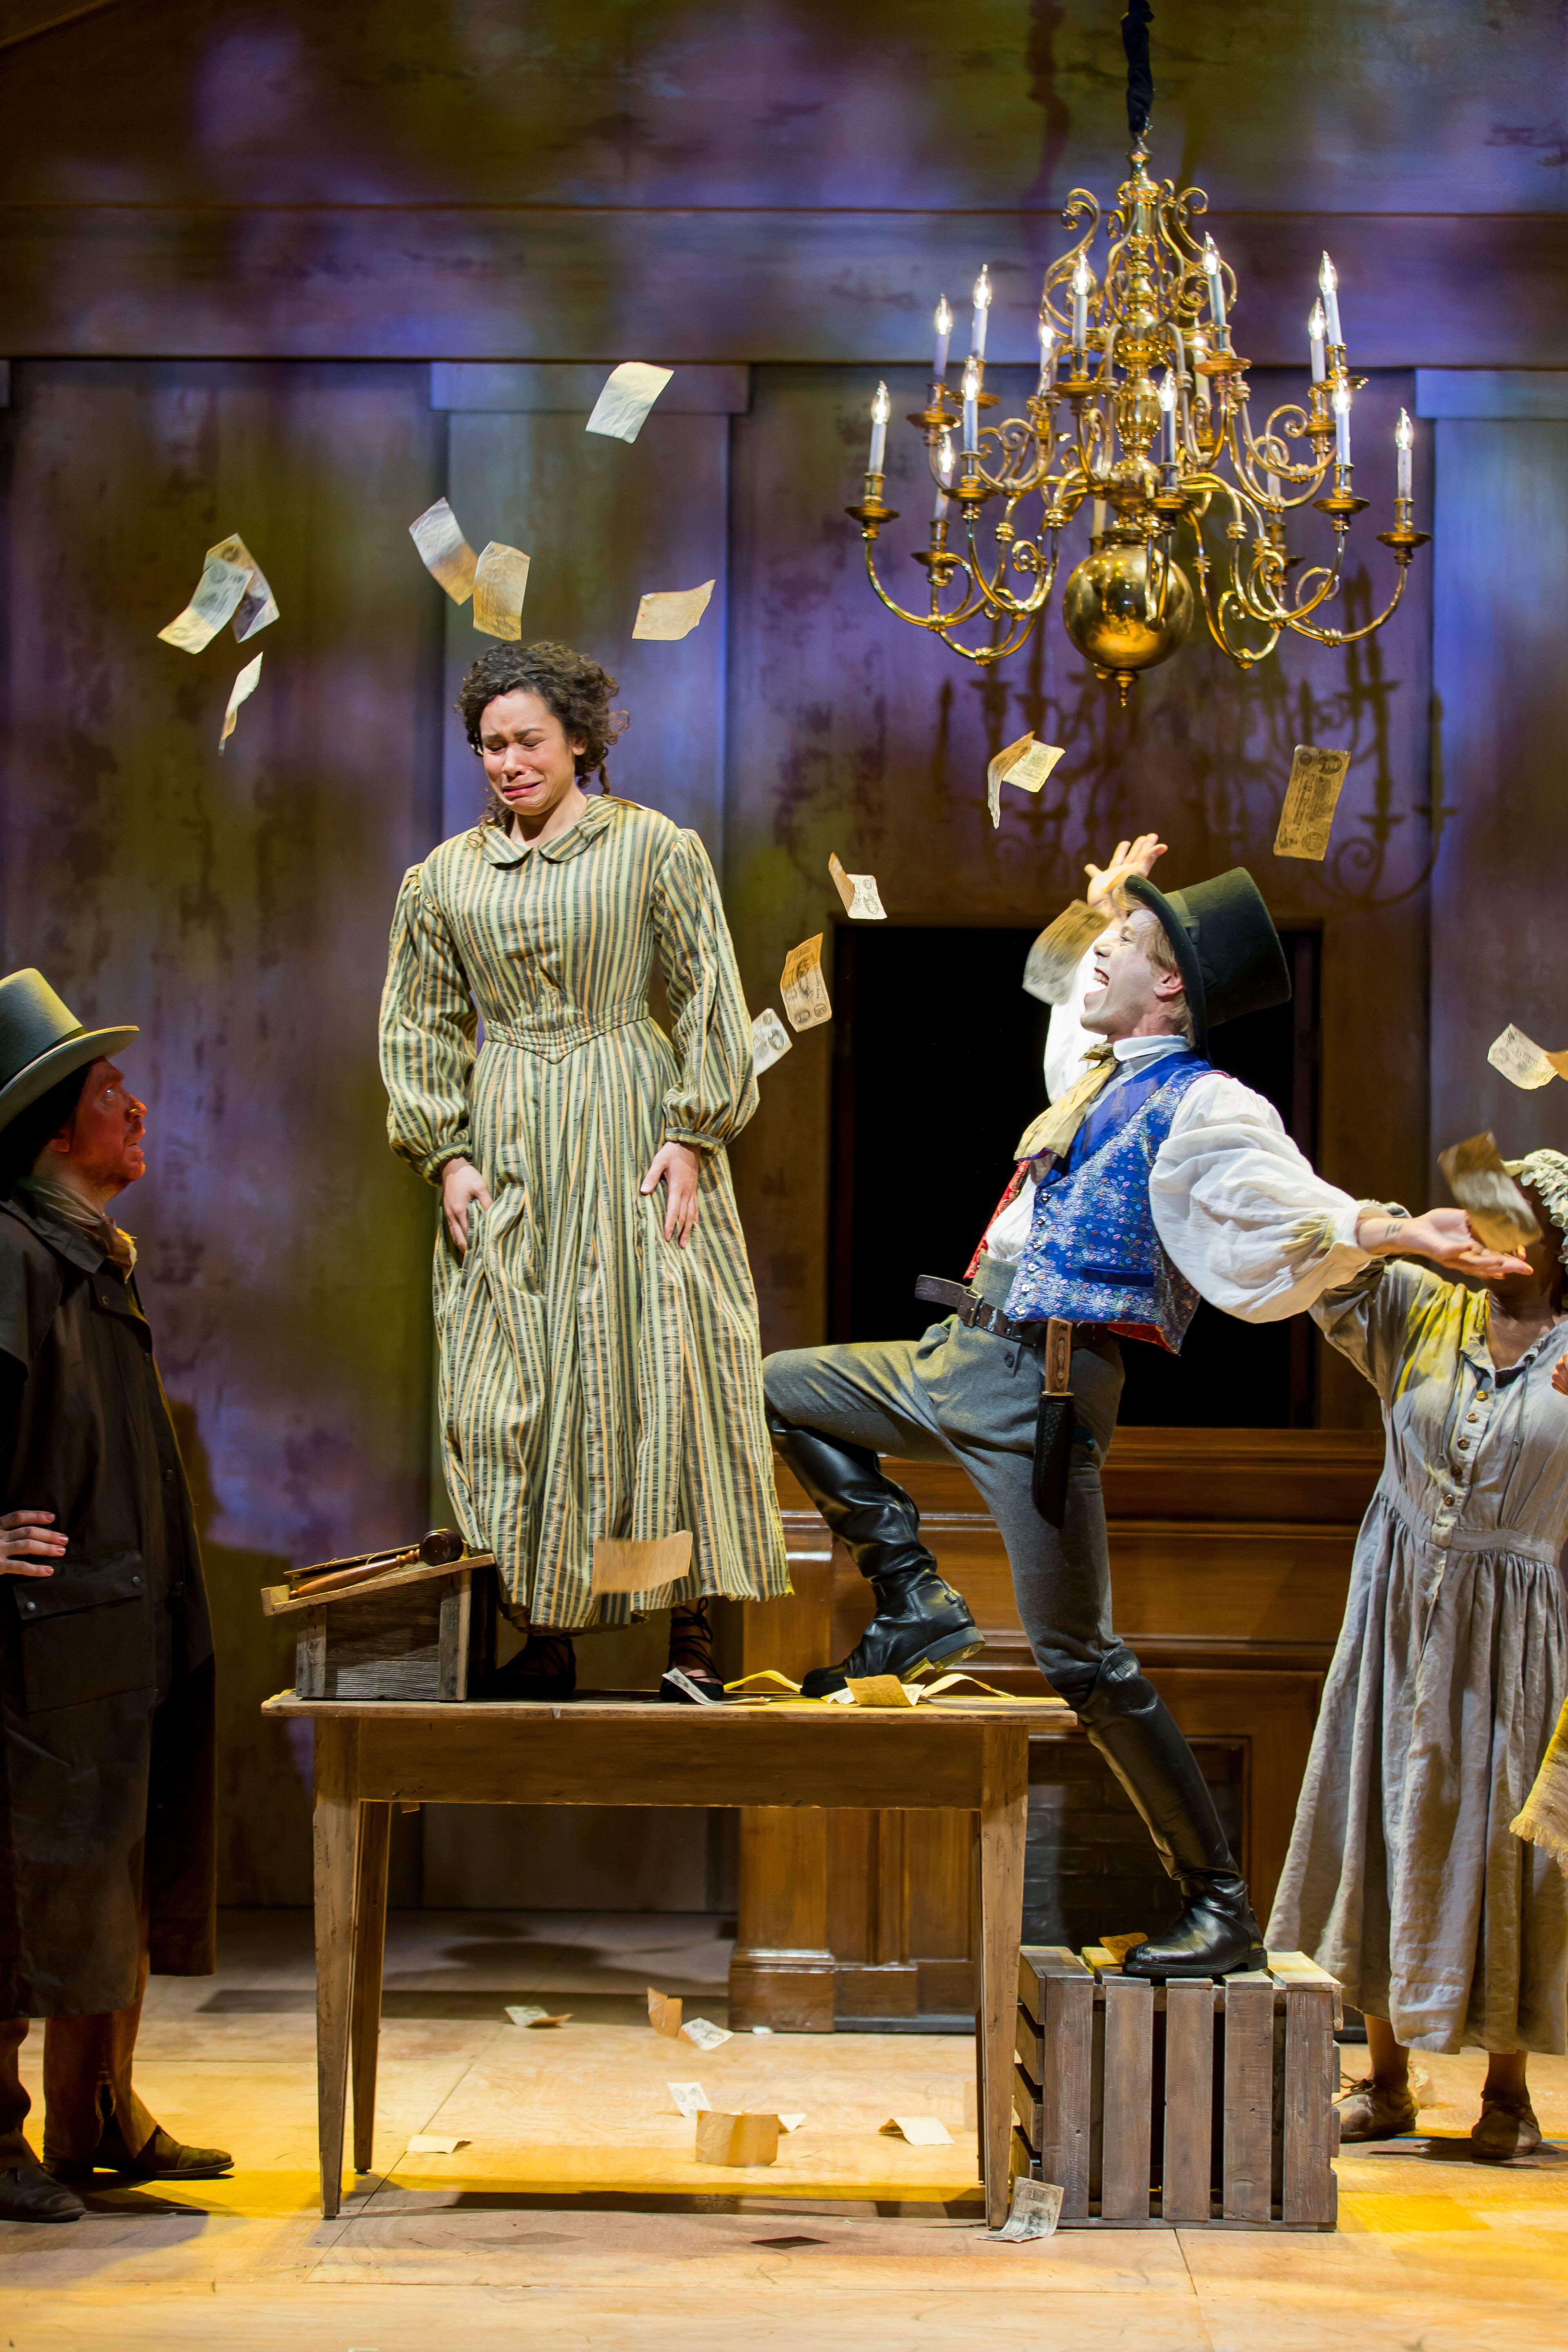 BWW Review: AN OCTOROON is Anything But Black and White at Woolly Mammoth Theatre Company